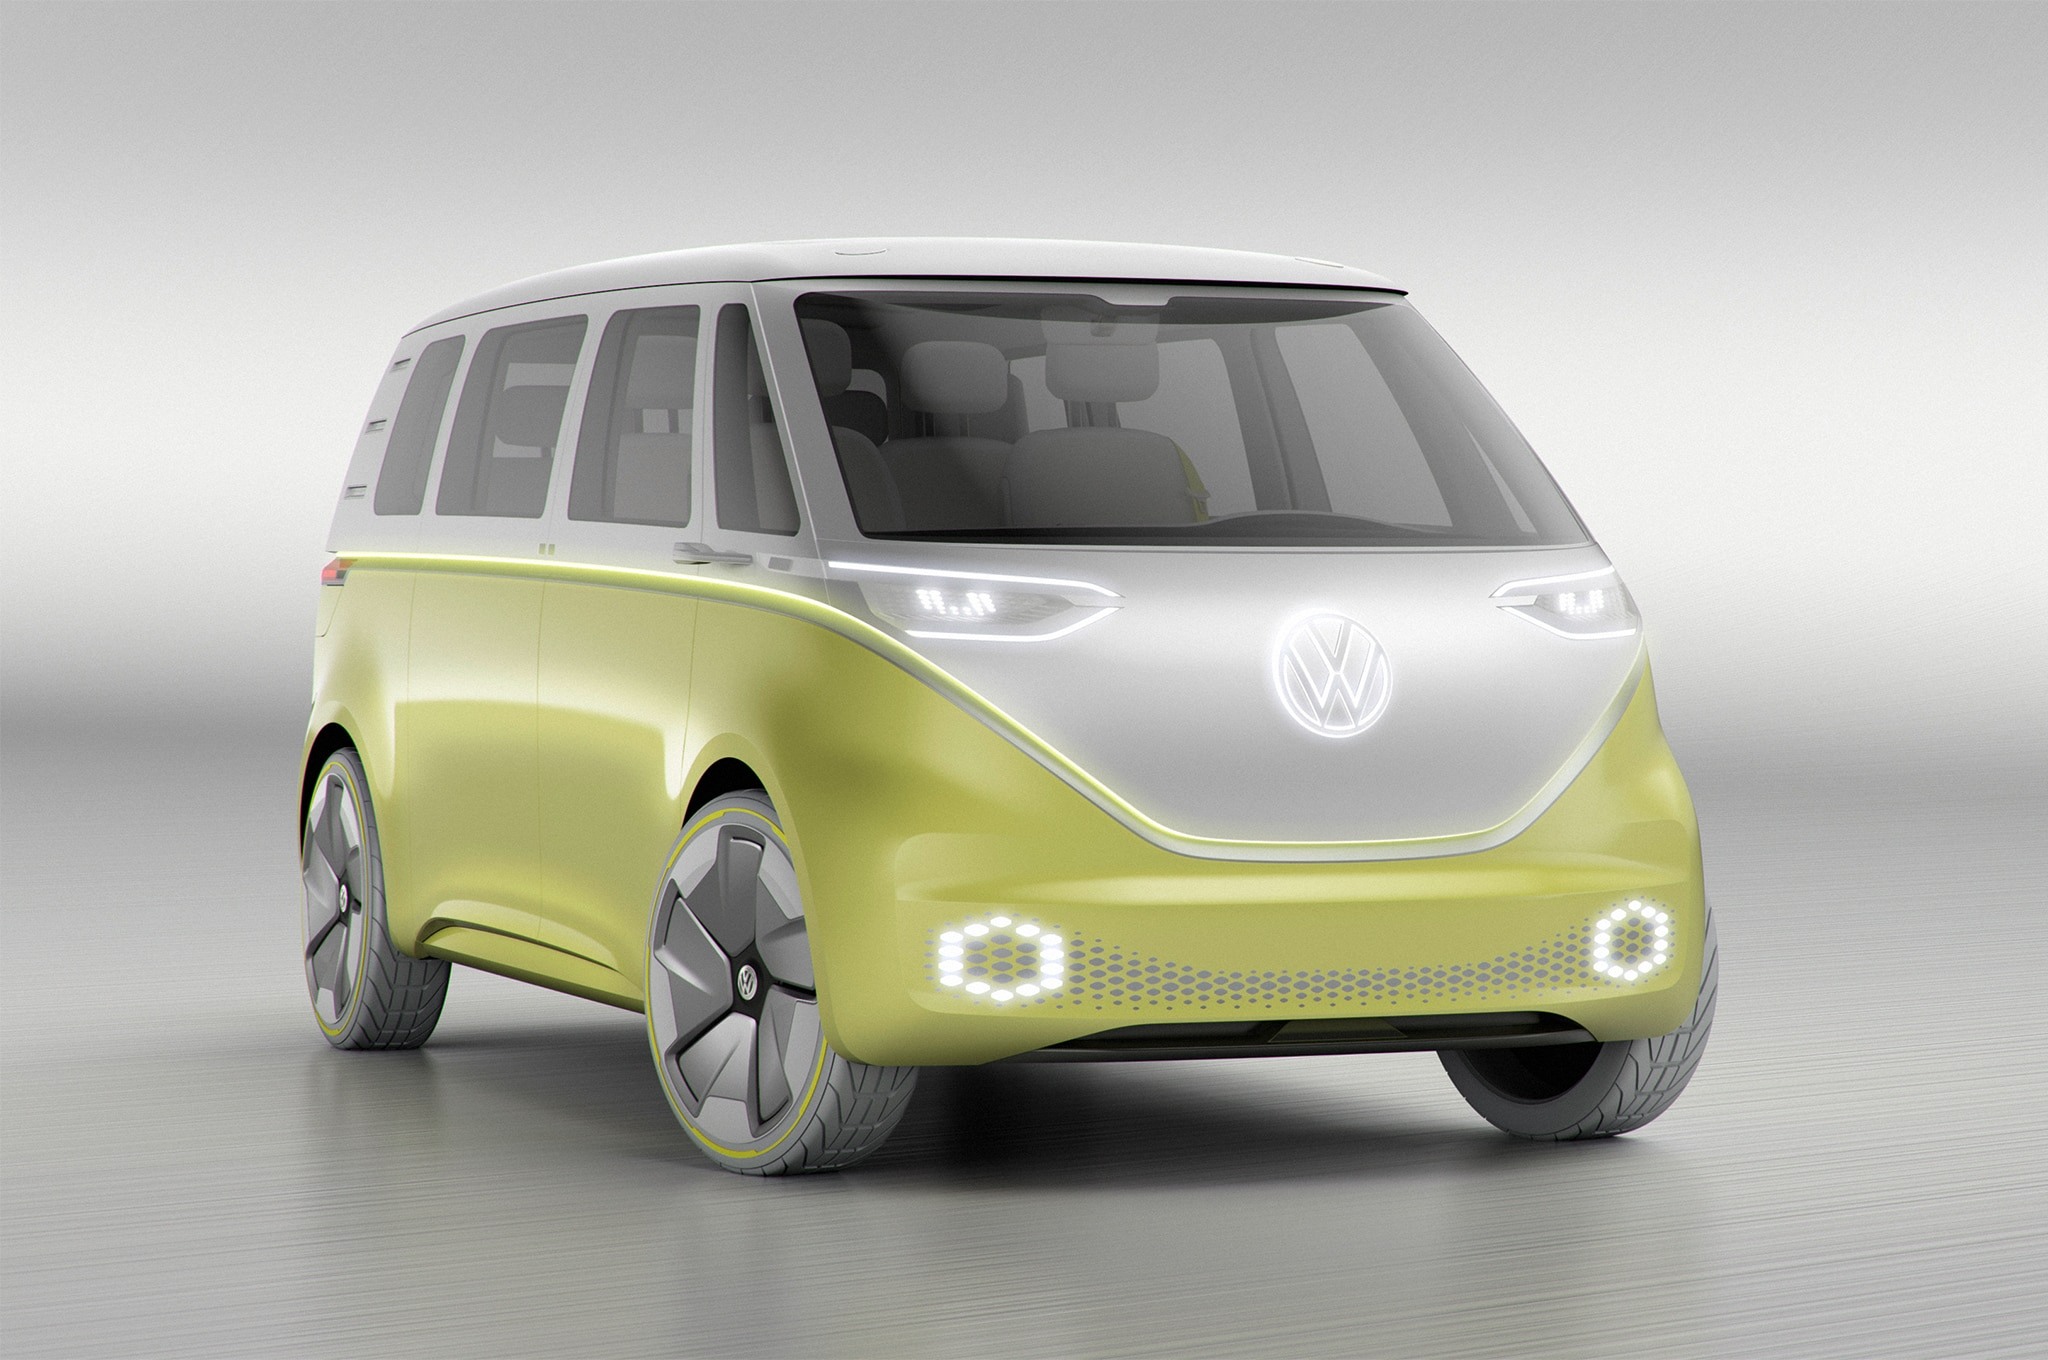 Volkswagen Microbus Based On ID Buzz Concept Gets Green Light